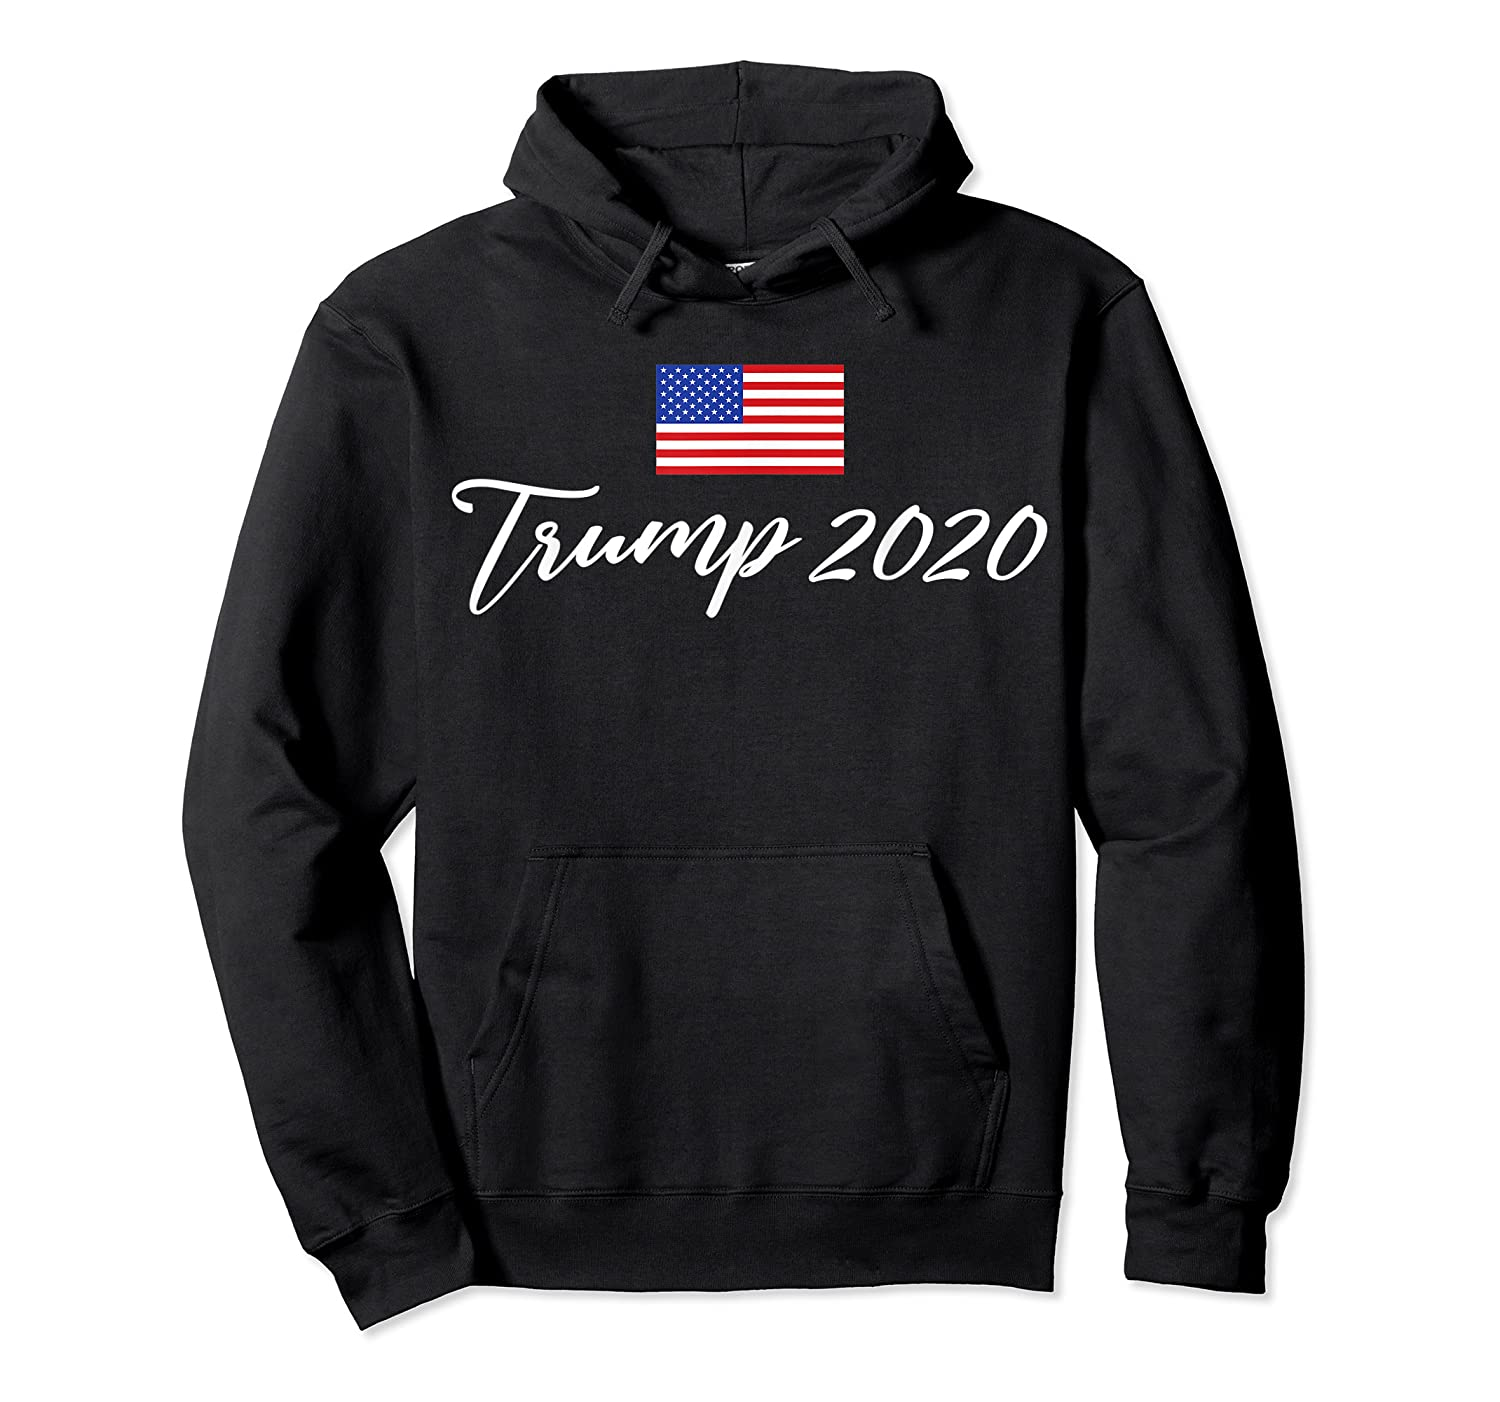 Donald Trump Election 2020 Re-elect President Gop Supporter T-shirt Unisex Pullover Hoodie